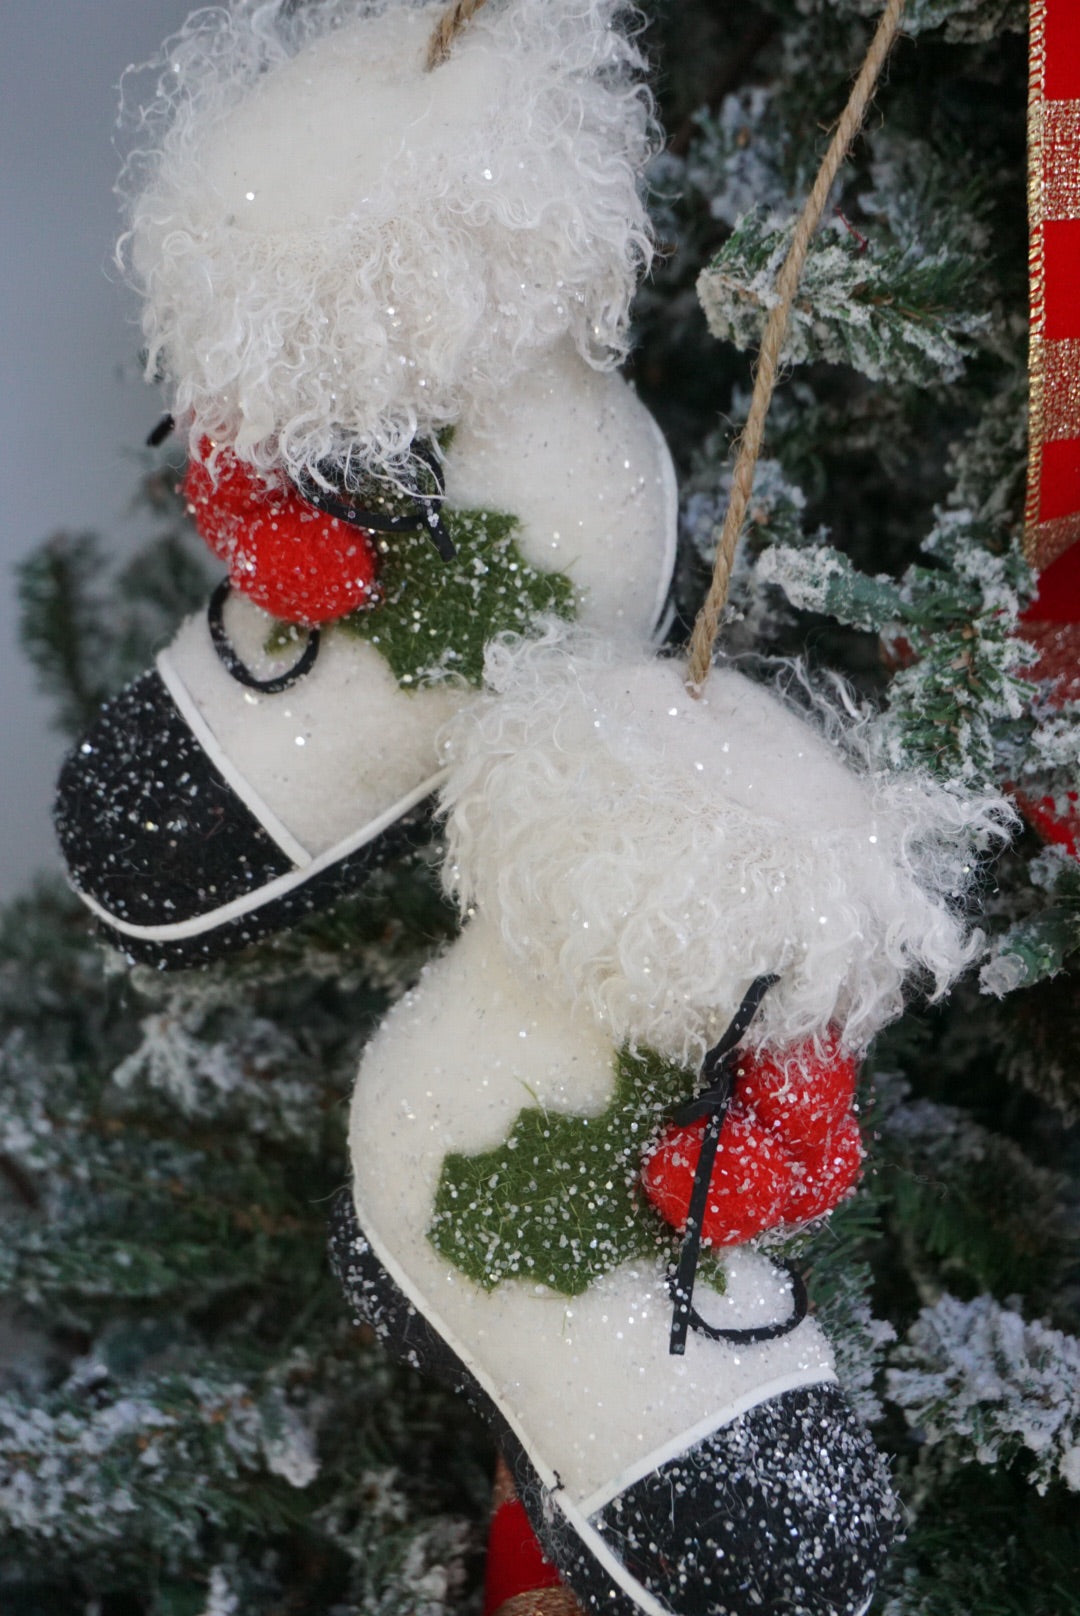 helloholidays,Snow Boots Ornament,Creative coop,Ornament